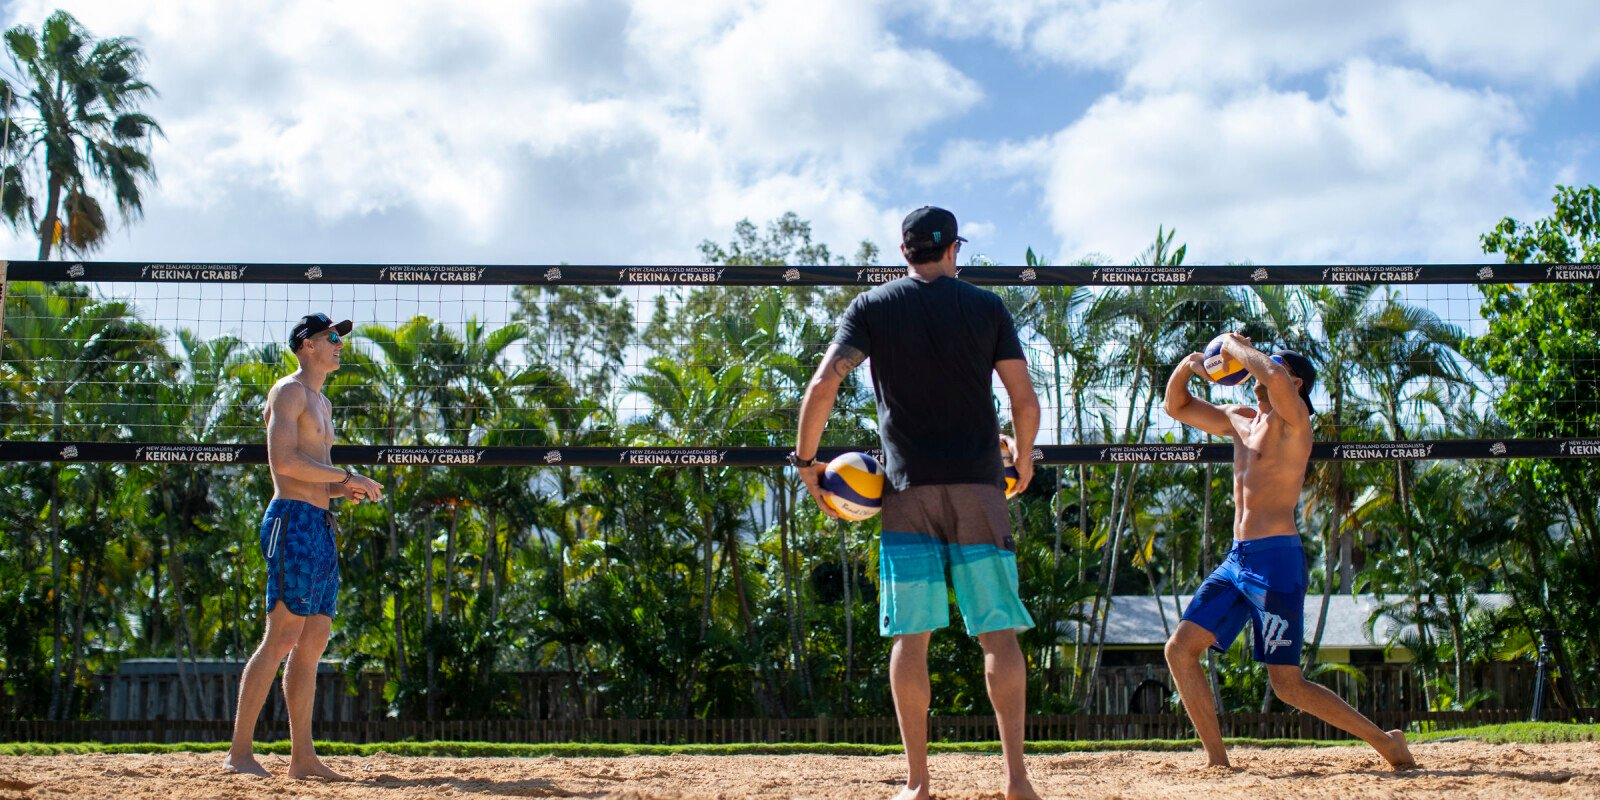 Photos of Hydro athletes Tri Bourne and Trevor Crabb training in Hawaii